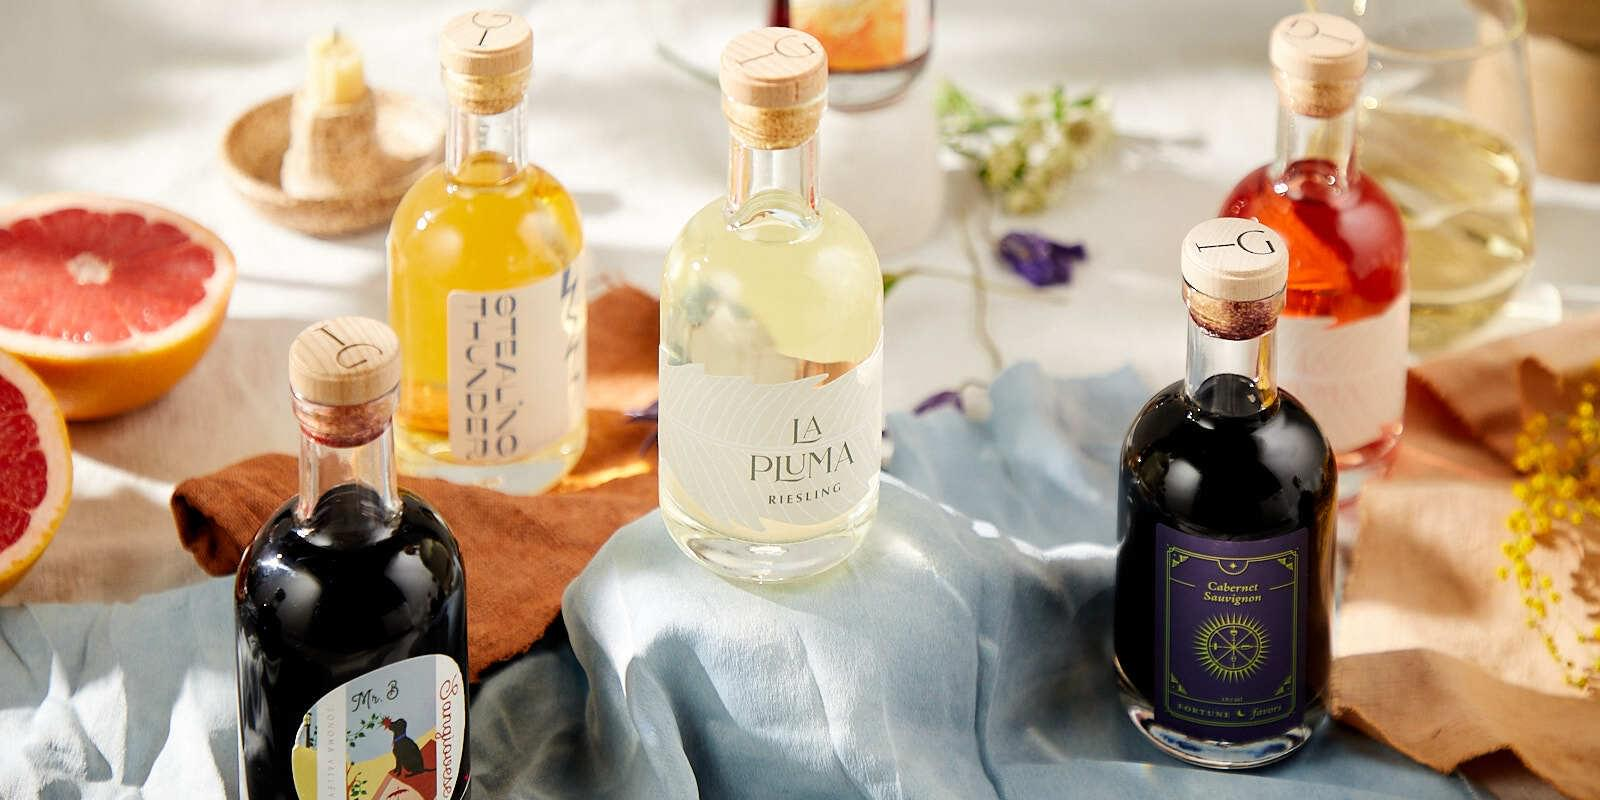 Bottles of wine from In Good Taste displayed casually on a table with various fruit, flowers, and candles surrounding them